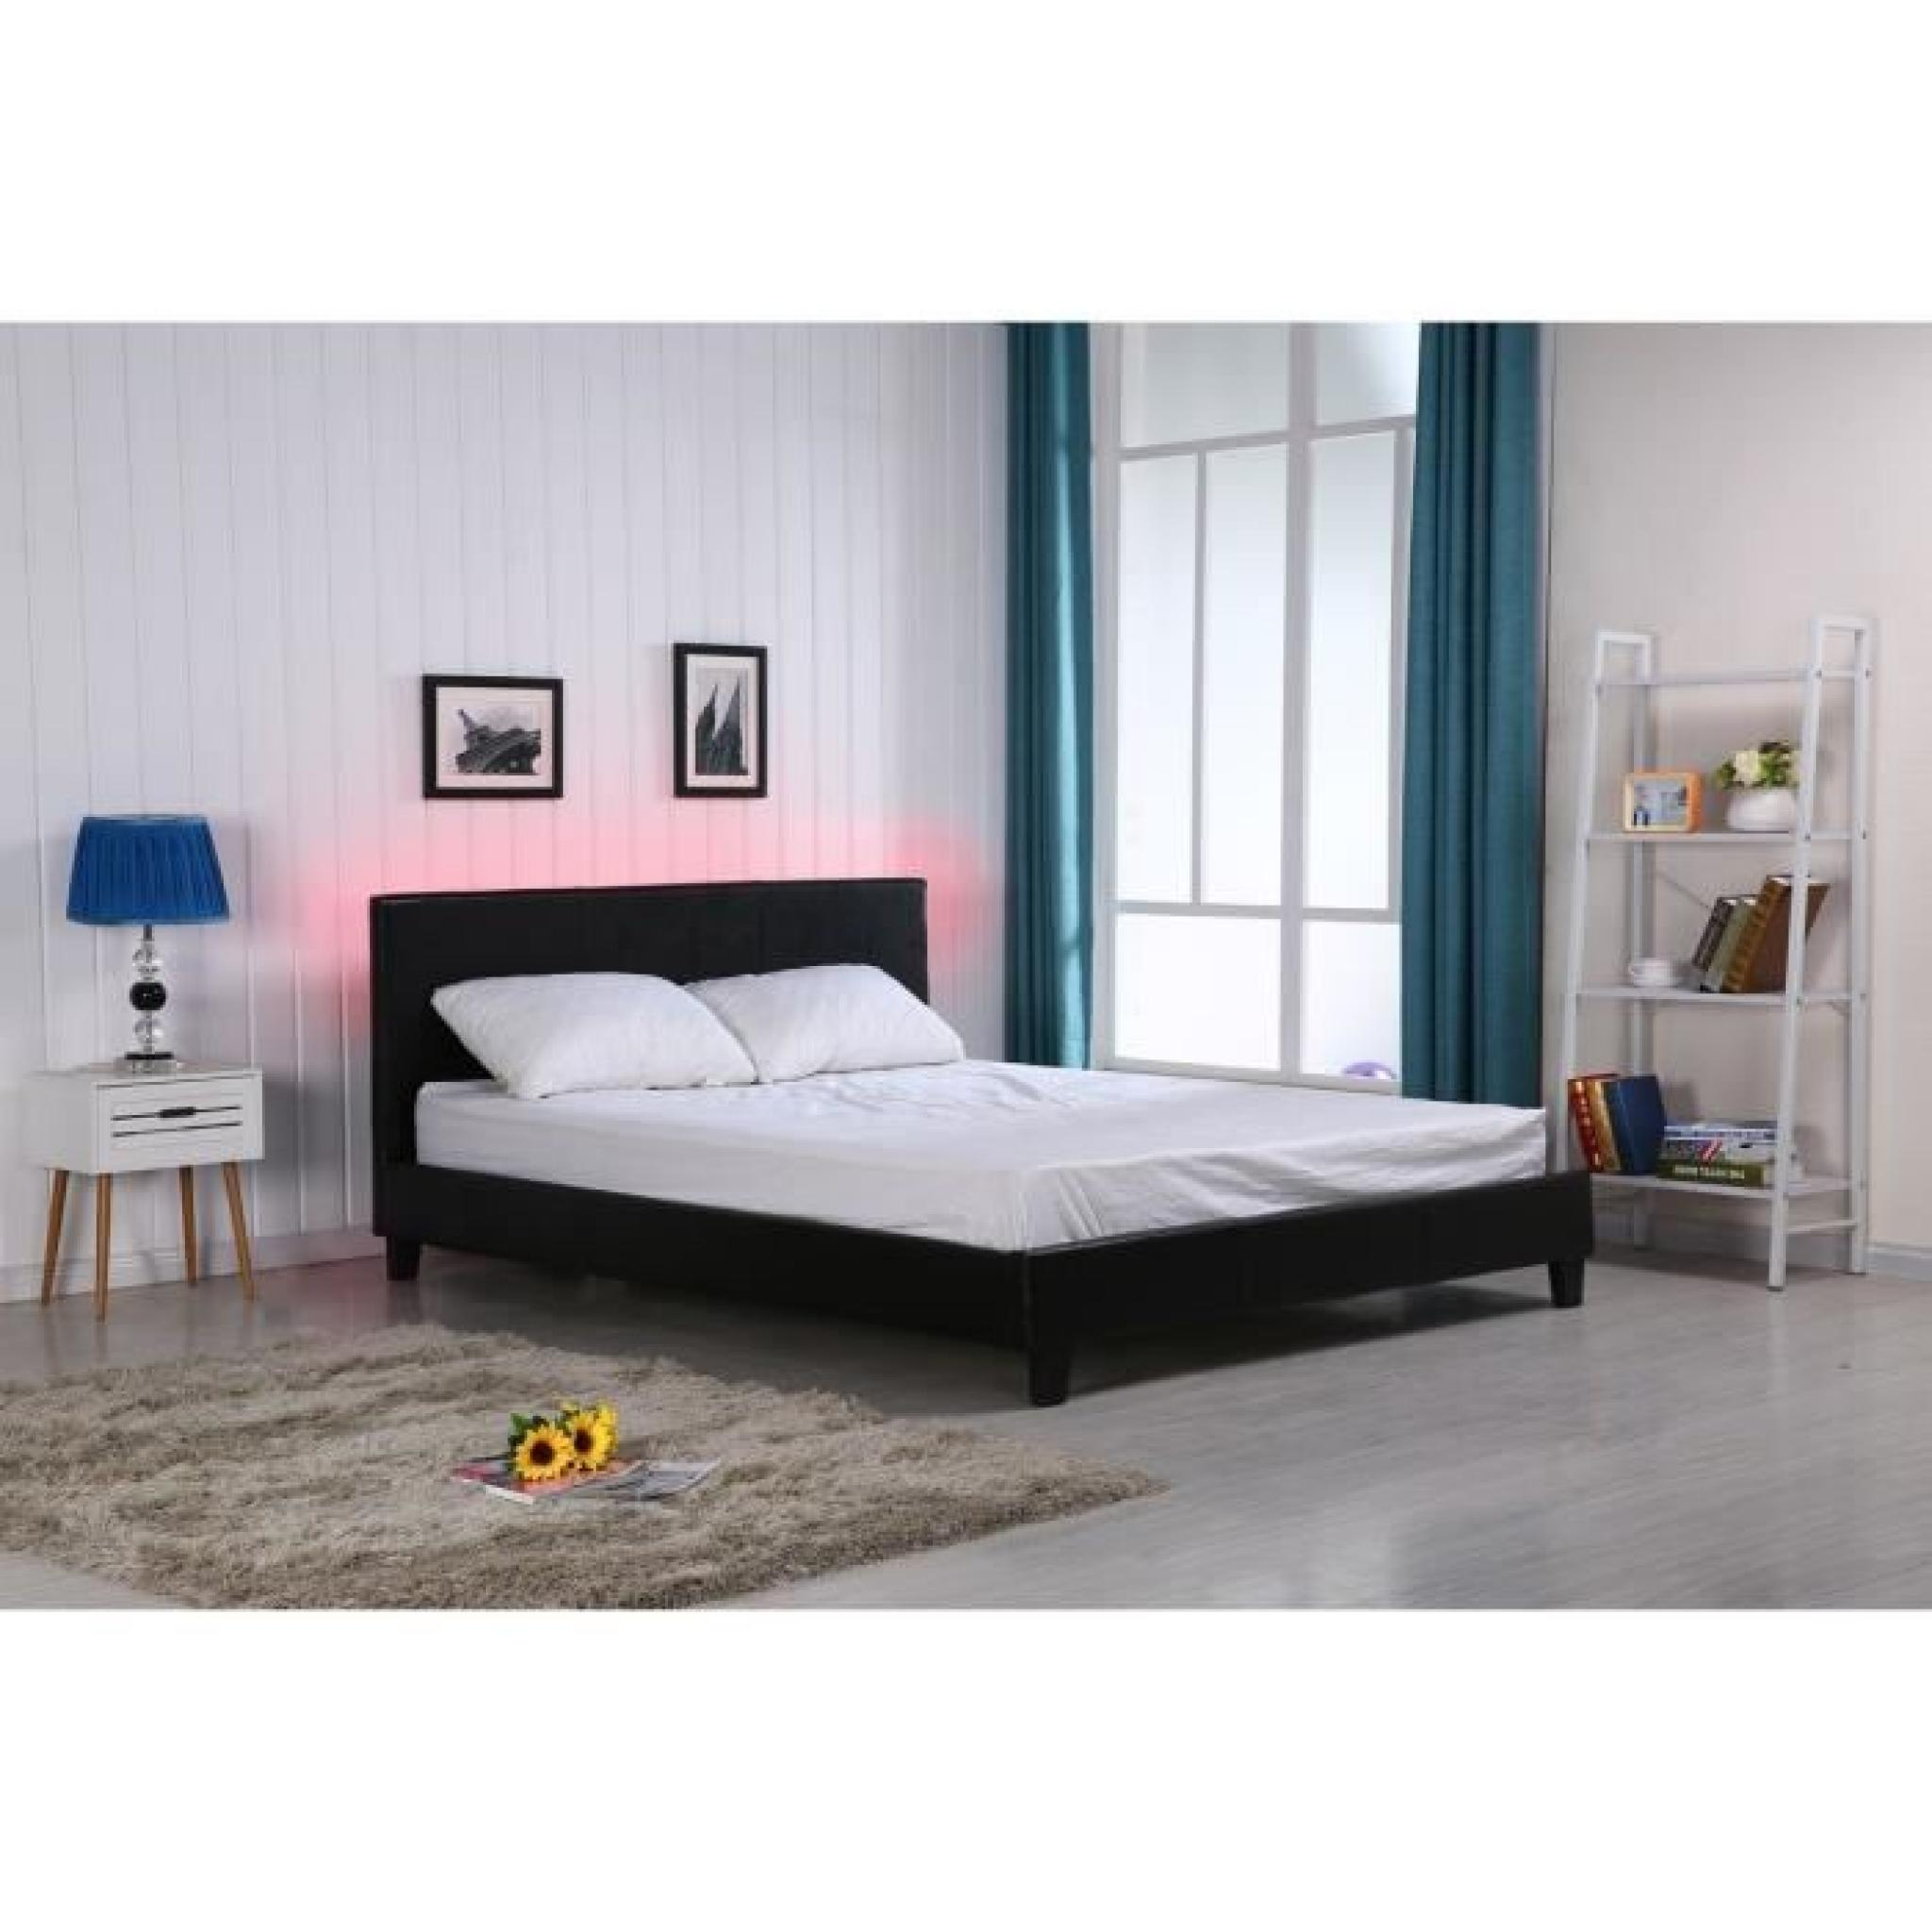 lit enfant bois massif 90x200 avec sommier ainiblcm01. Black Bedroom Furniture Sets. Home Design Ideas